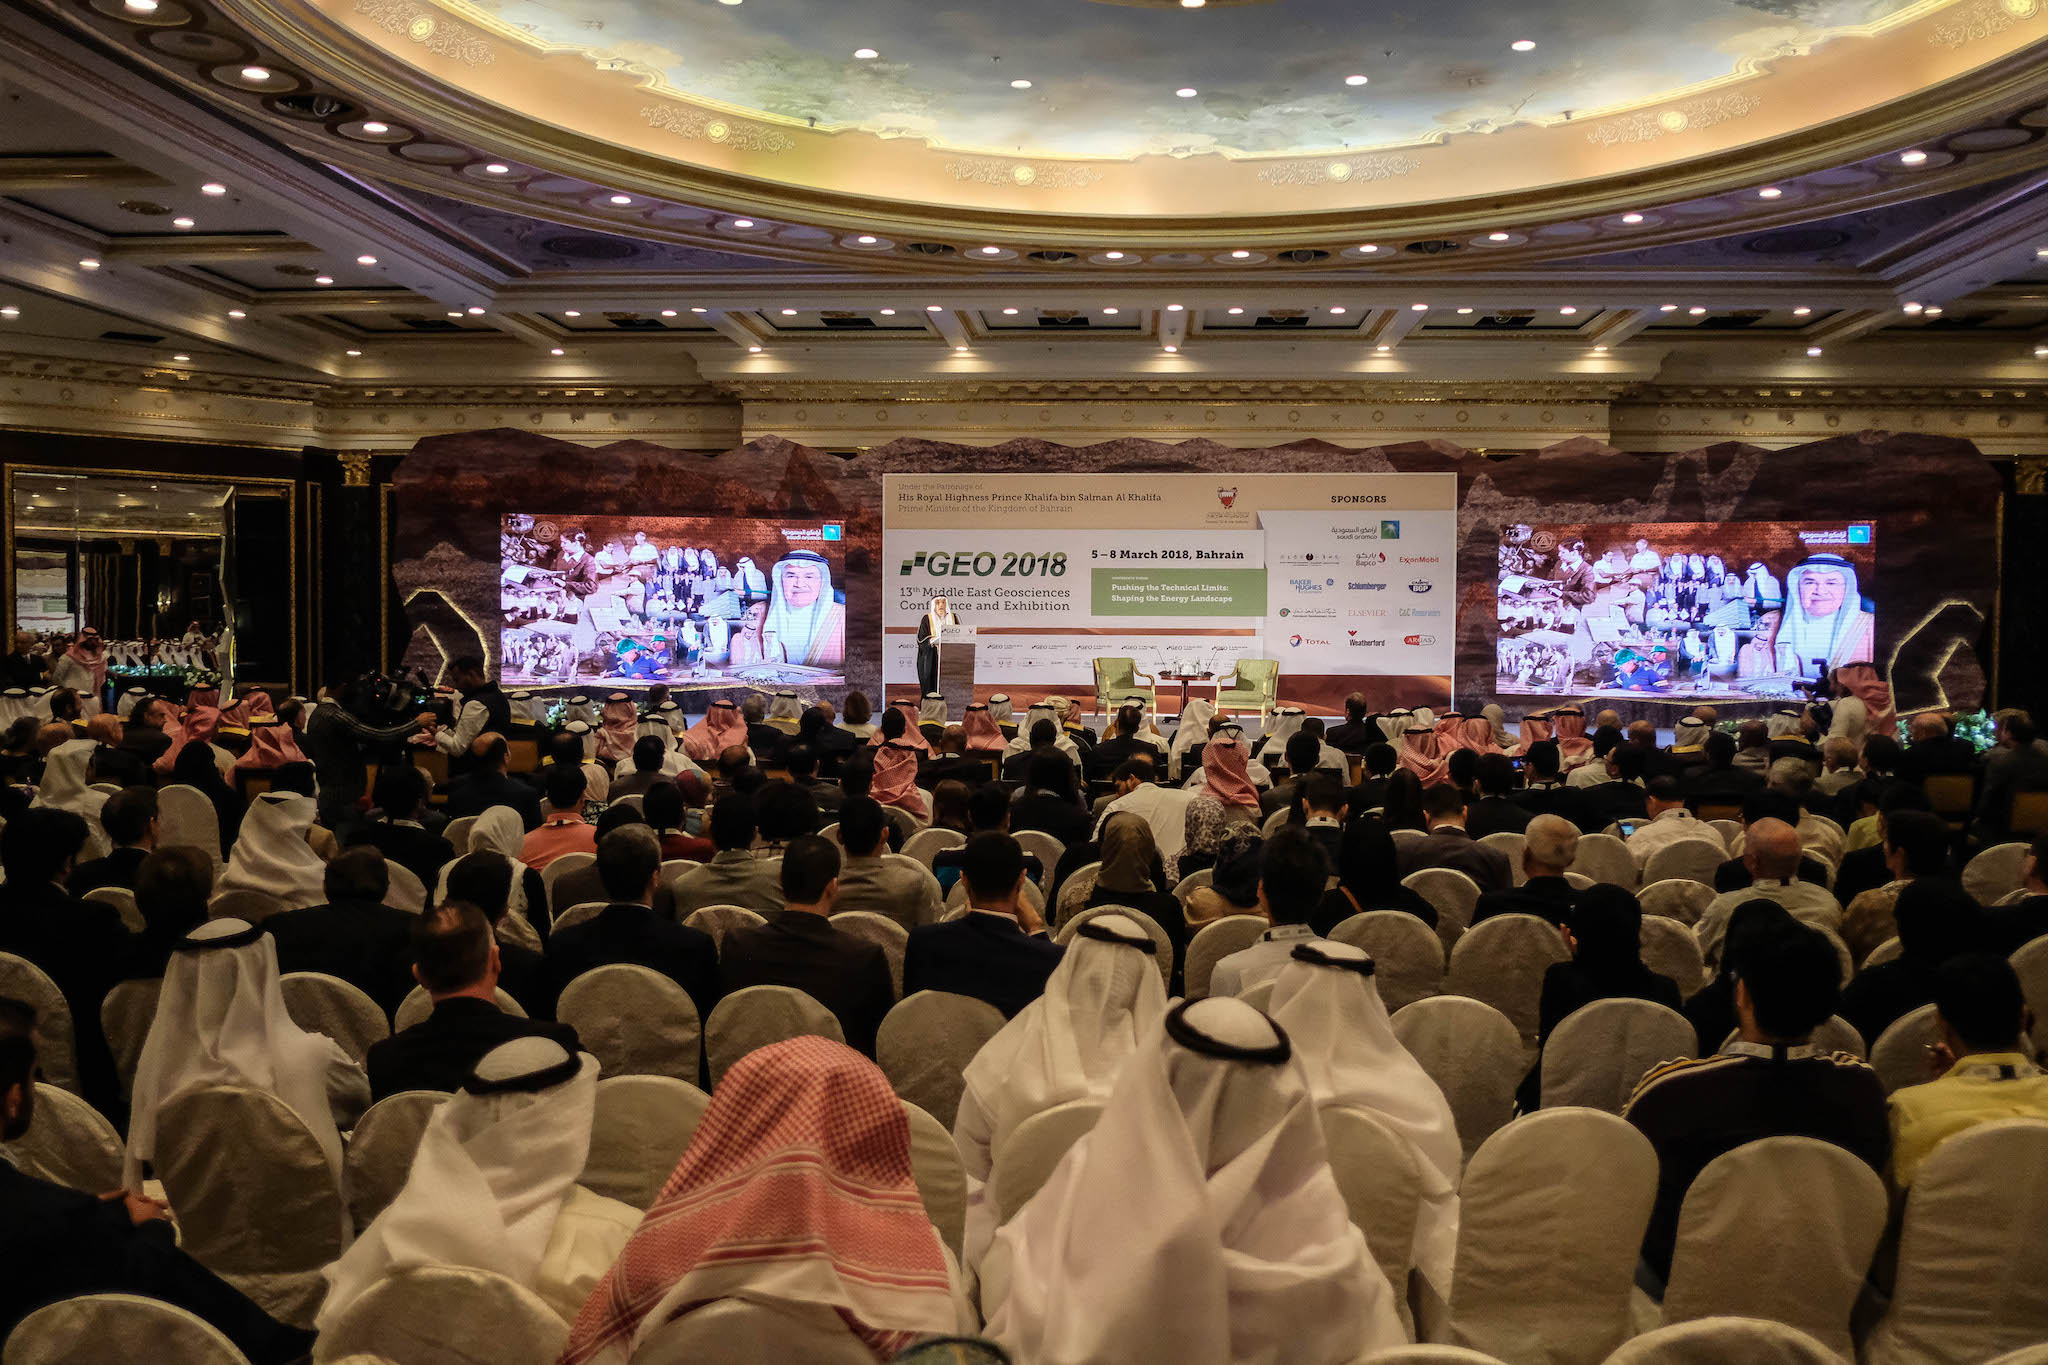 Conference opening audience and stage